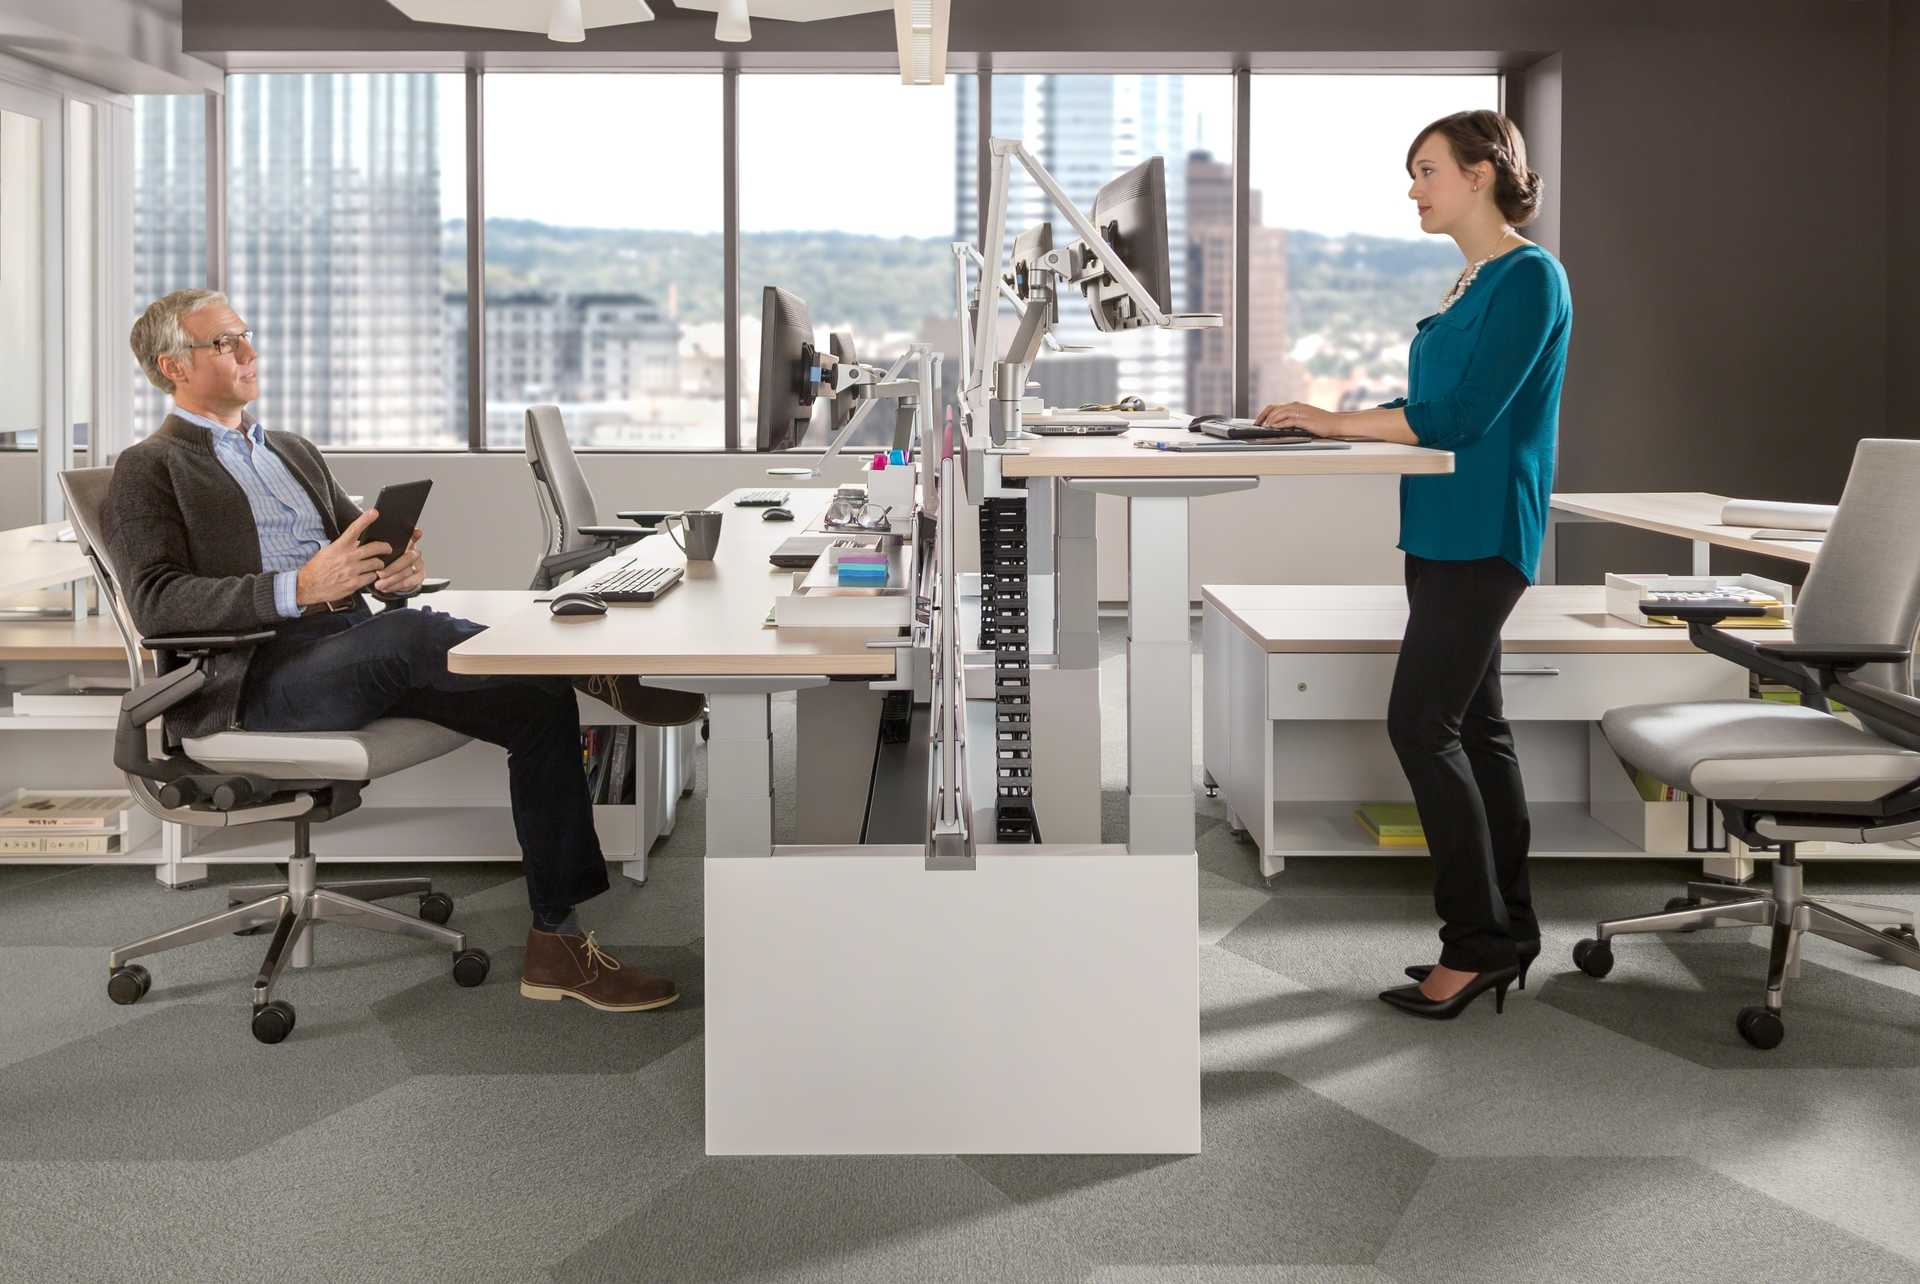 Standing Desks Executive Stand Up Desk: Standing Desks Put Health First, But Will They Catch On